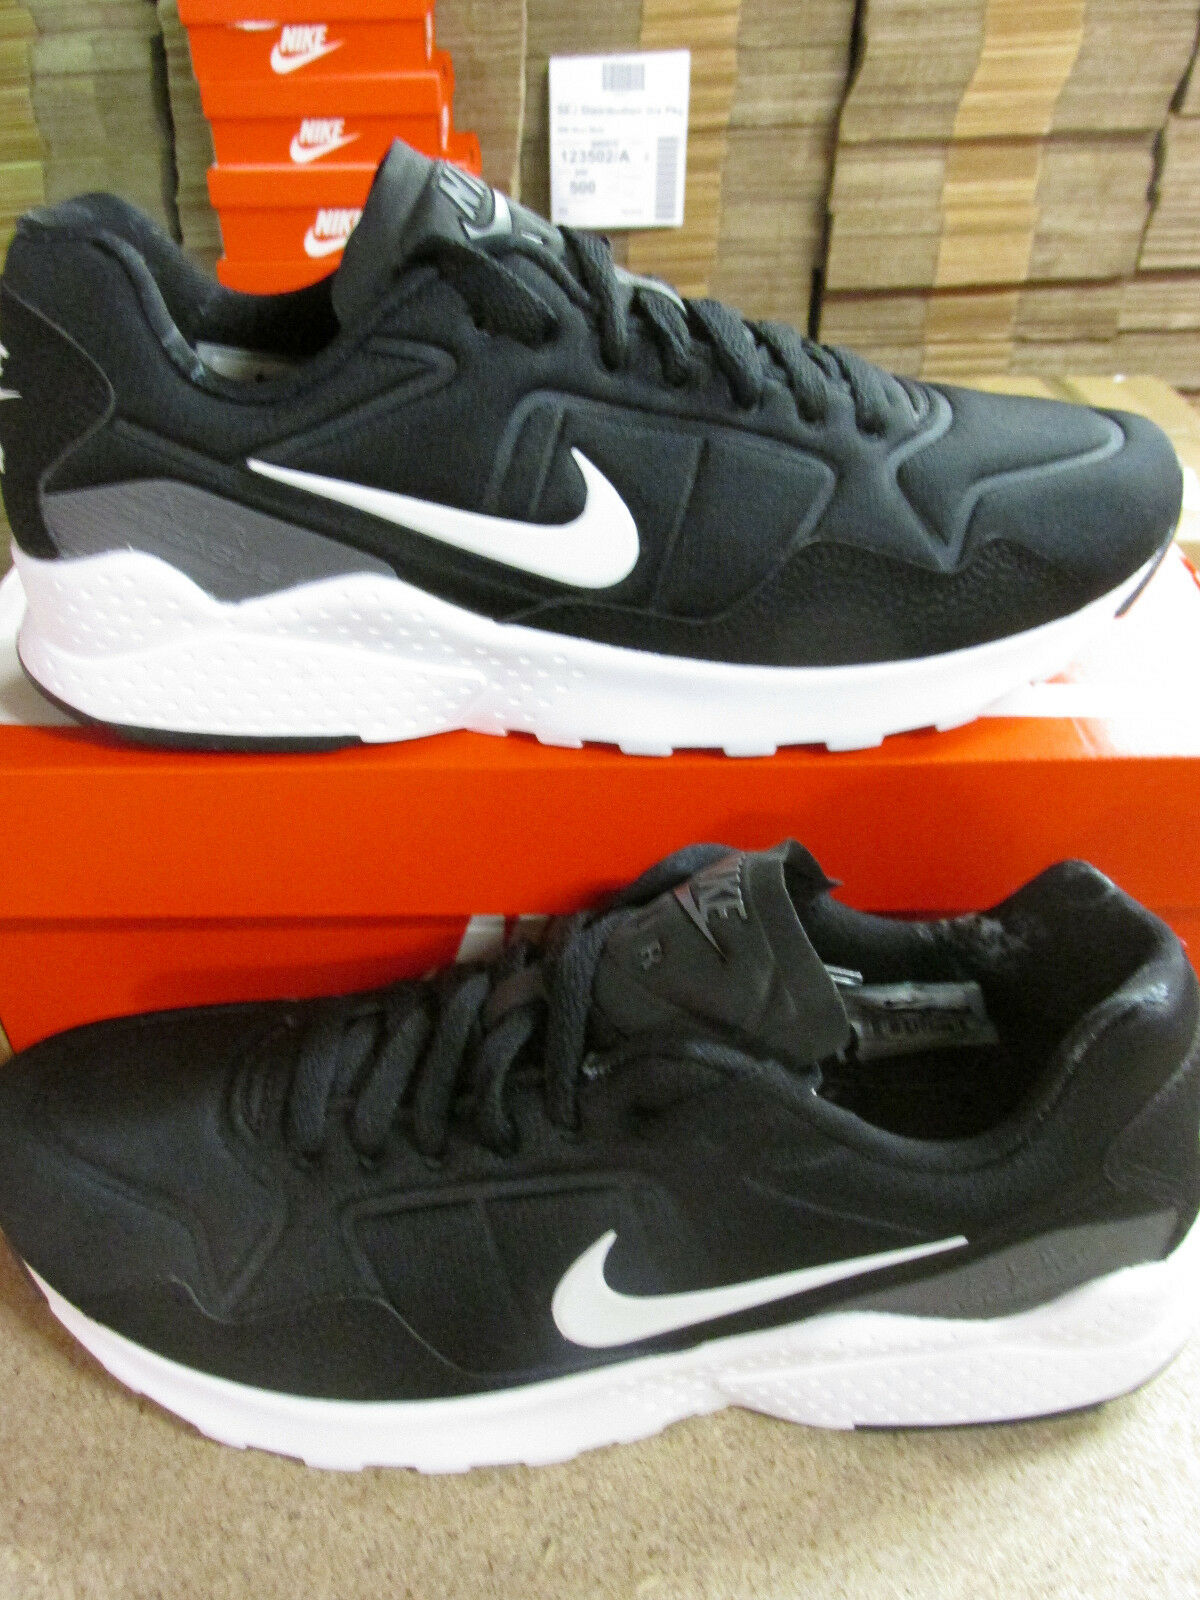 Nike Air Zoom Pegasus 92 Mens Running Trainers 844652 001 Sneakers Shoes